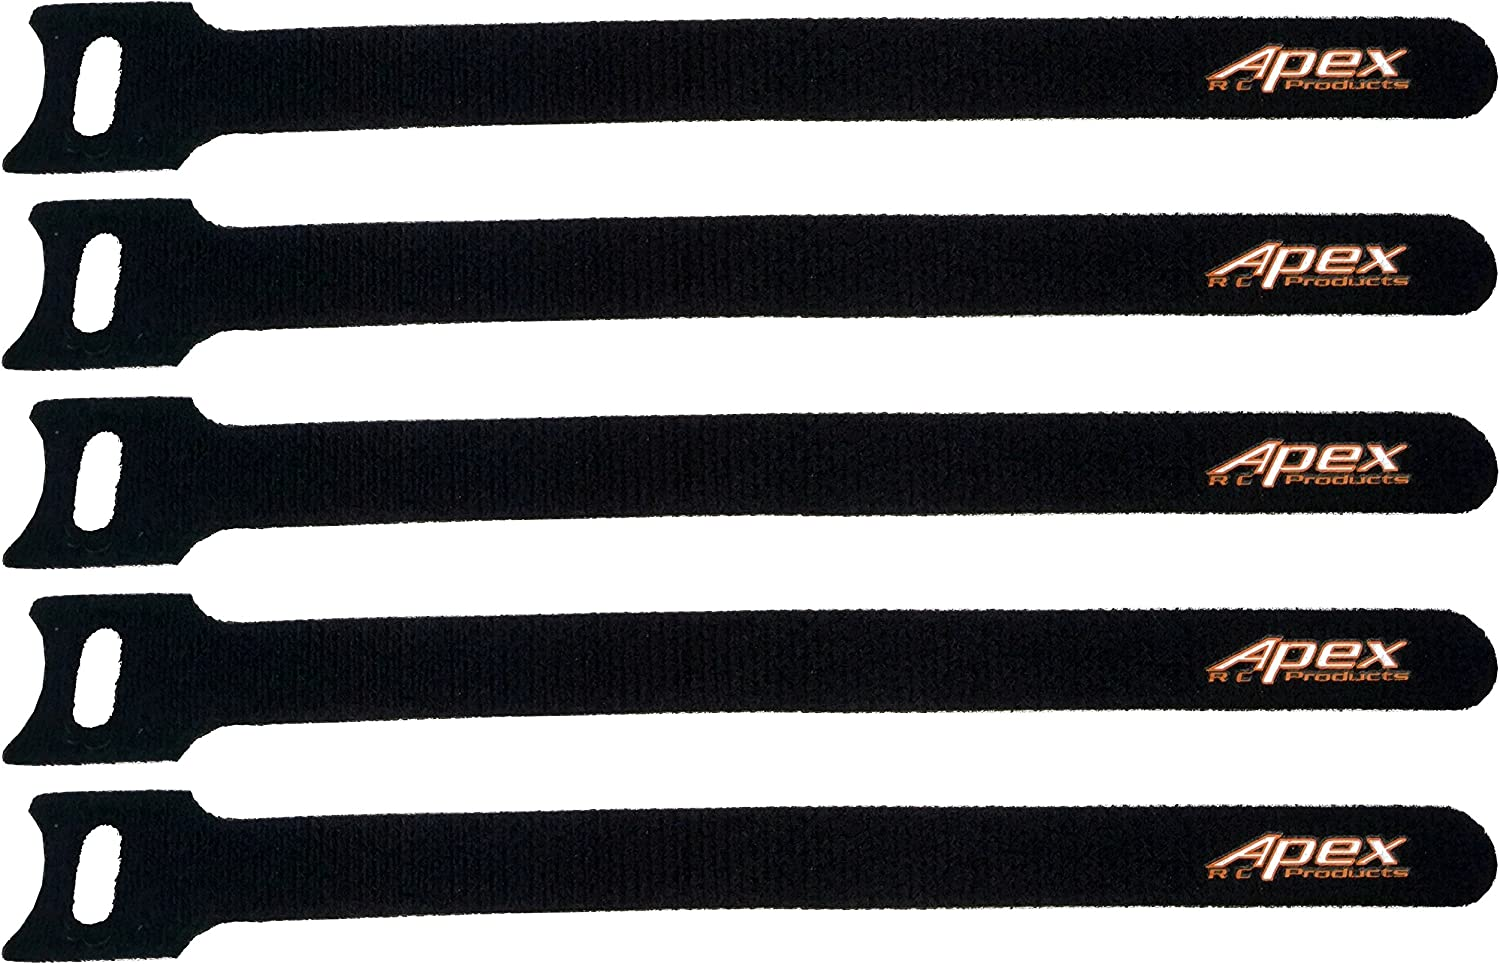 6PCS Hobbypark RC Battery Straps 20x200mm Cable Straps Reusable Fastening Staps Securing Straps Hook and Loop Cinch Cable Ties Down Wraps Adjustable Cinch Straps